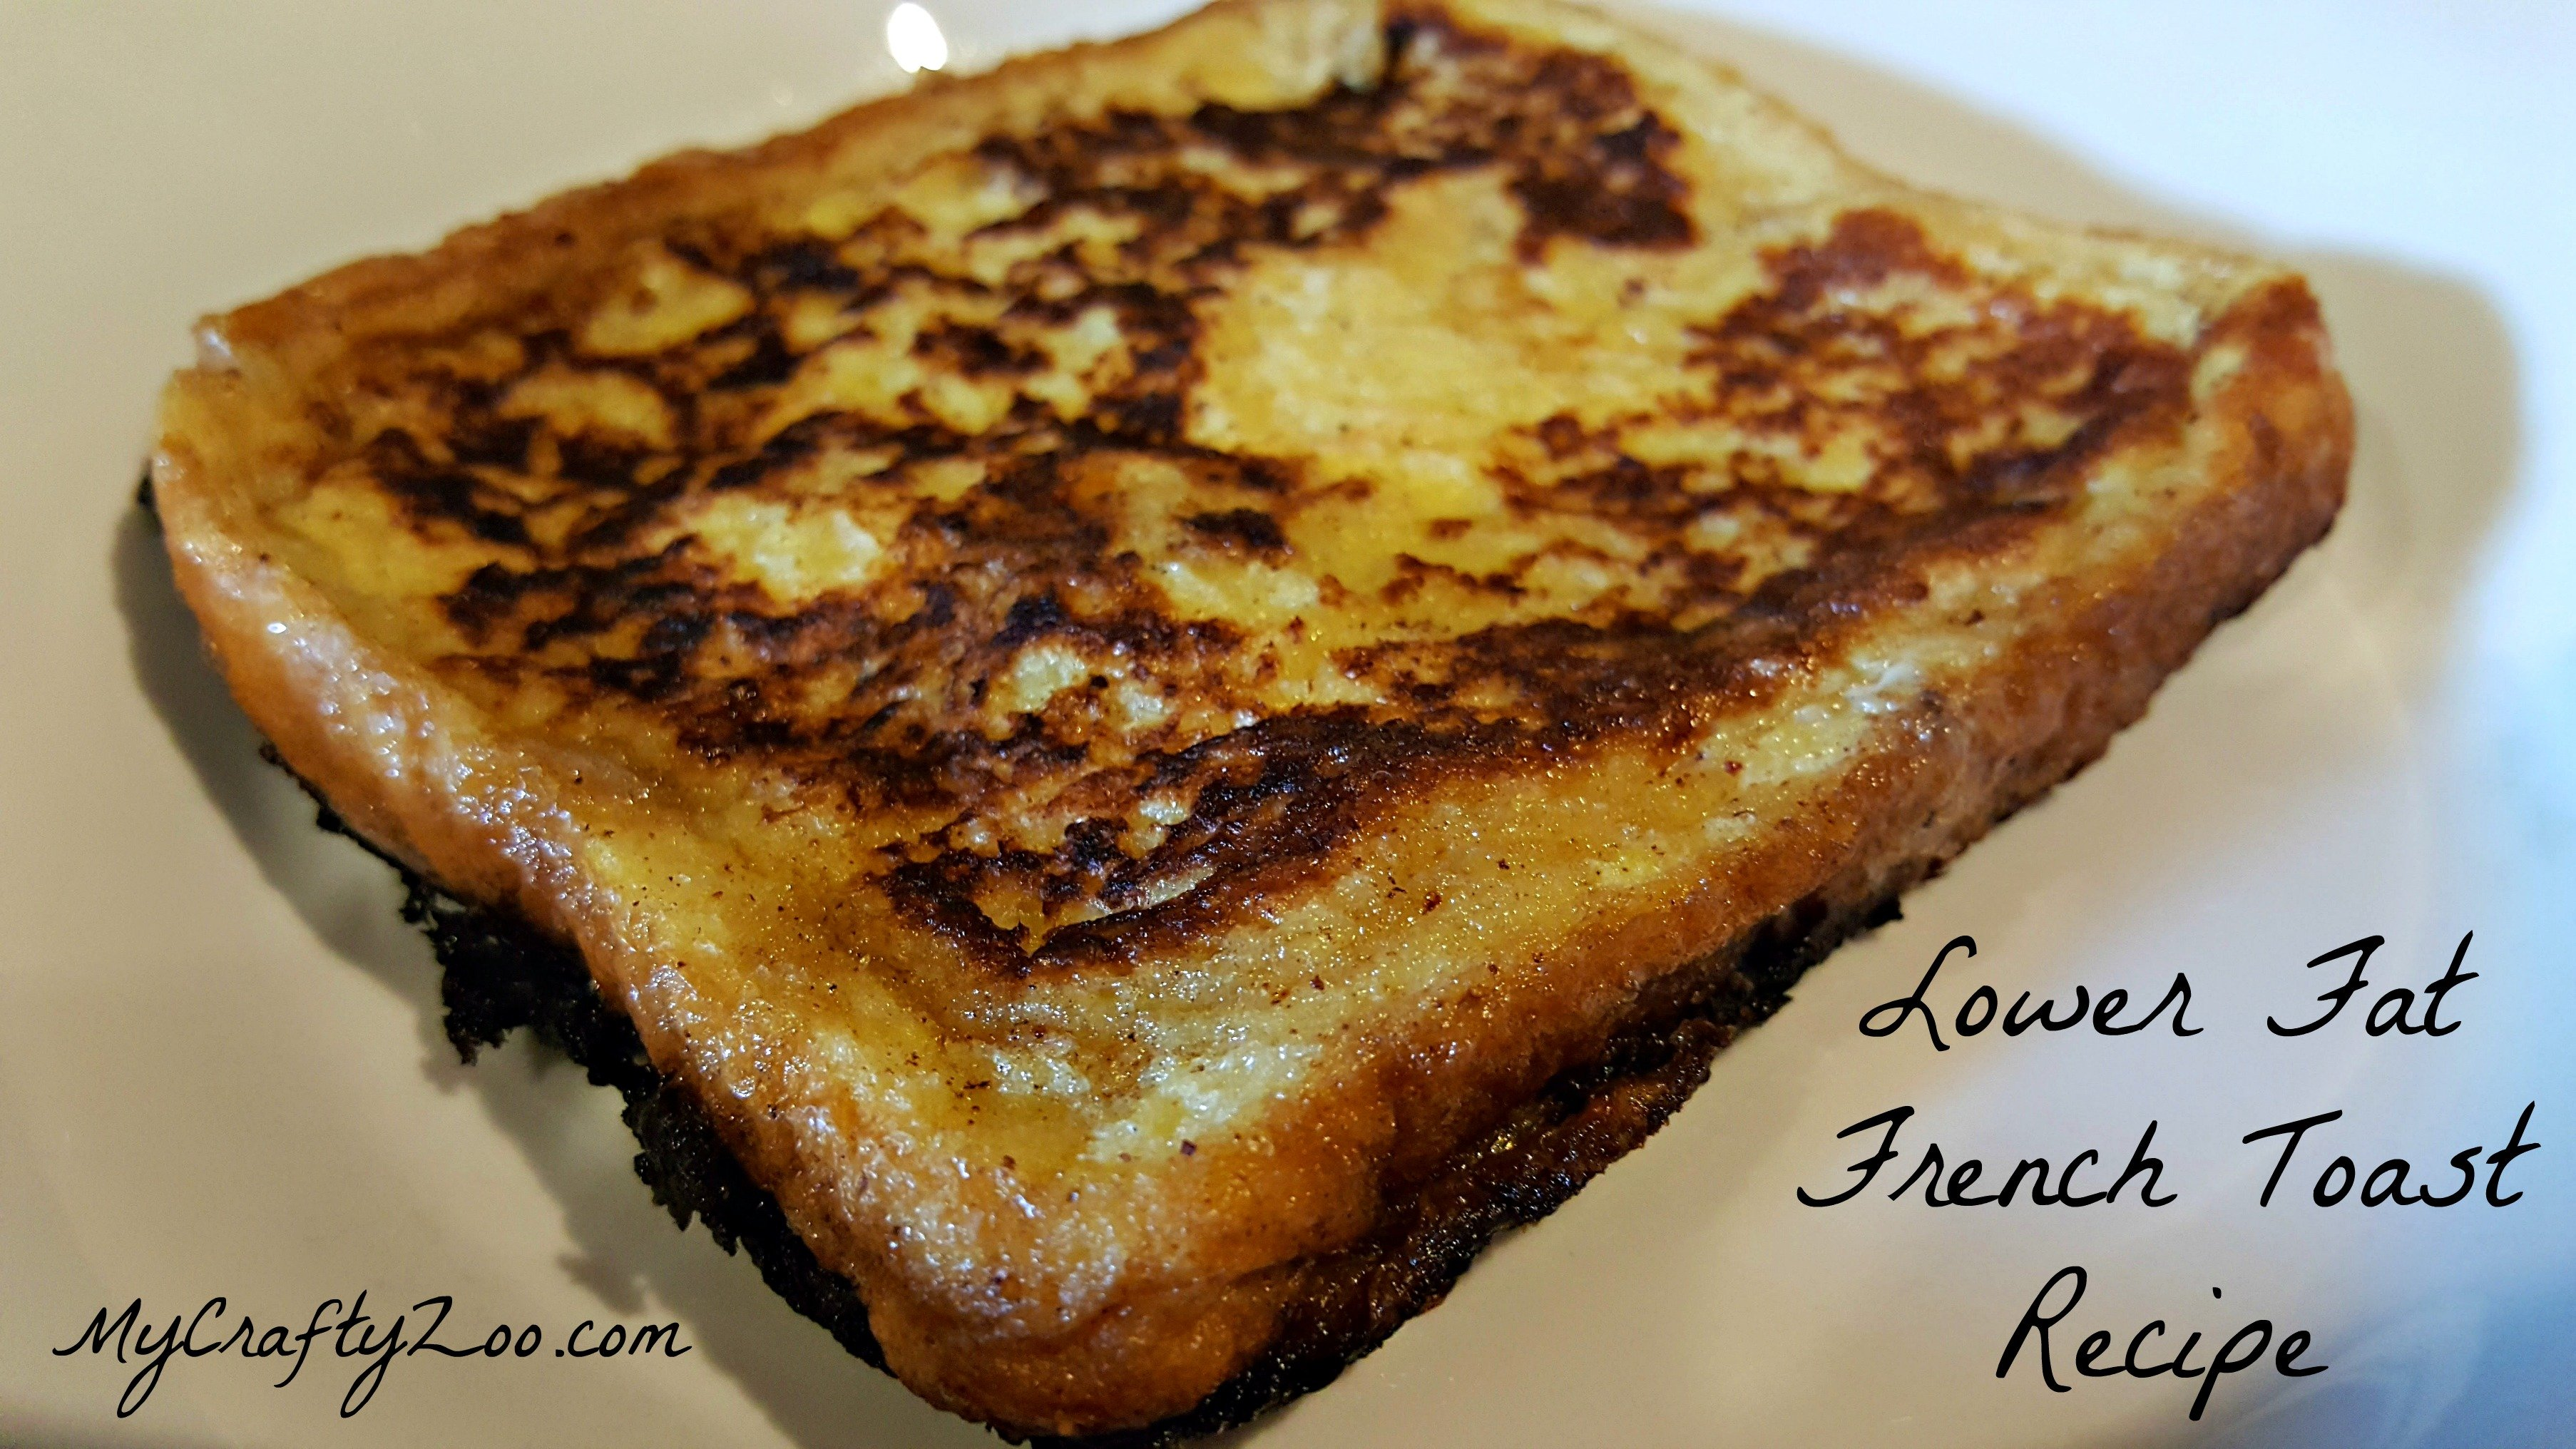 frenchtoast Lower Fat Dairy Free (if you please) French Toast Recipe